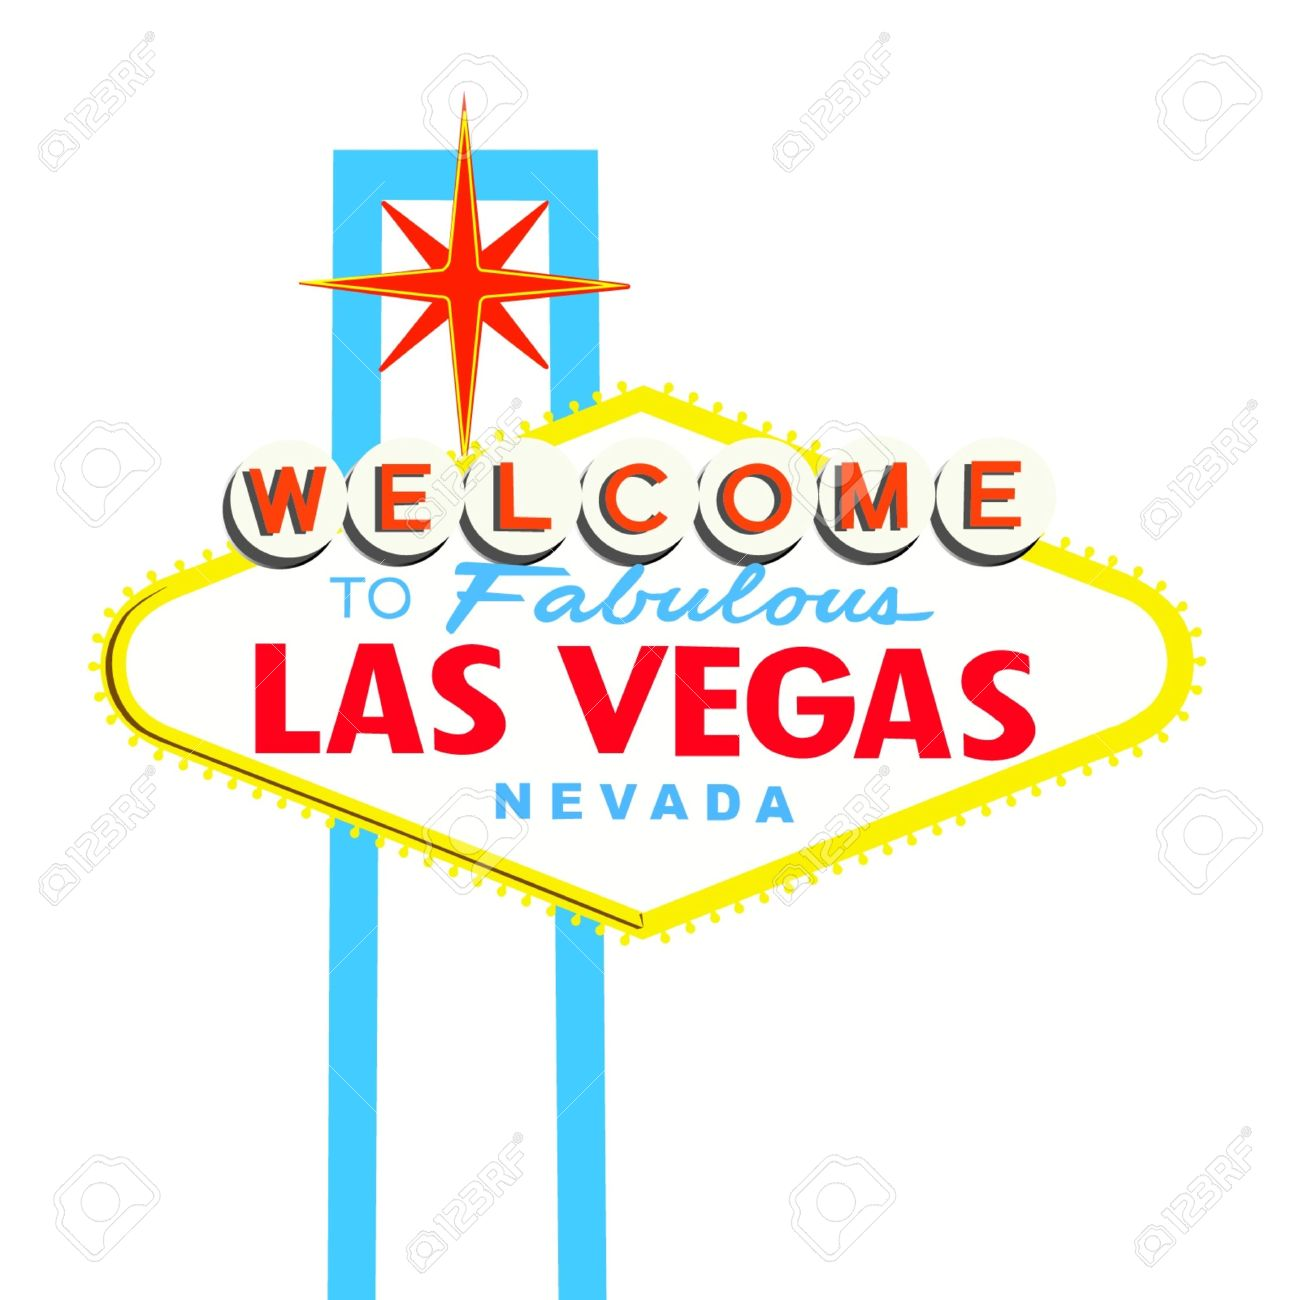 vegas sign: Welcome to Las Vegas Sign on White background